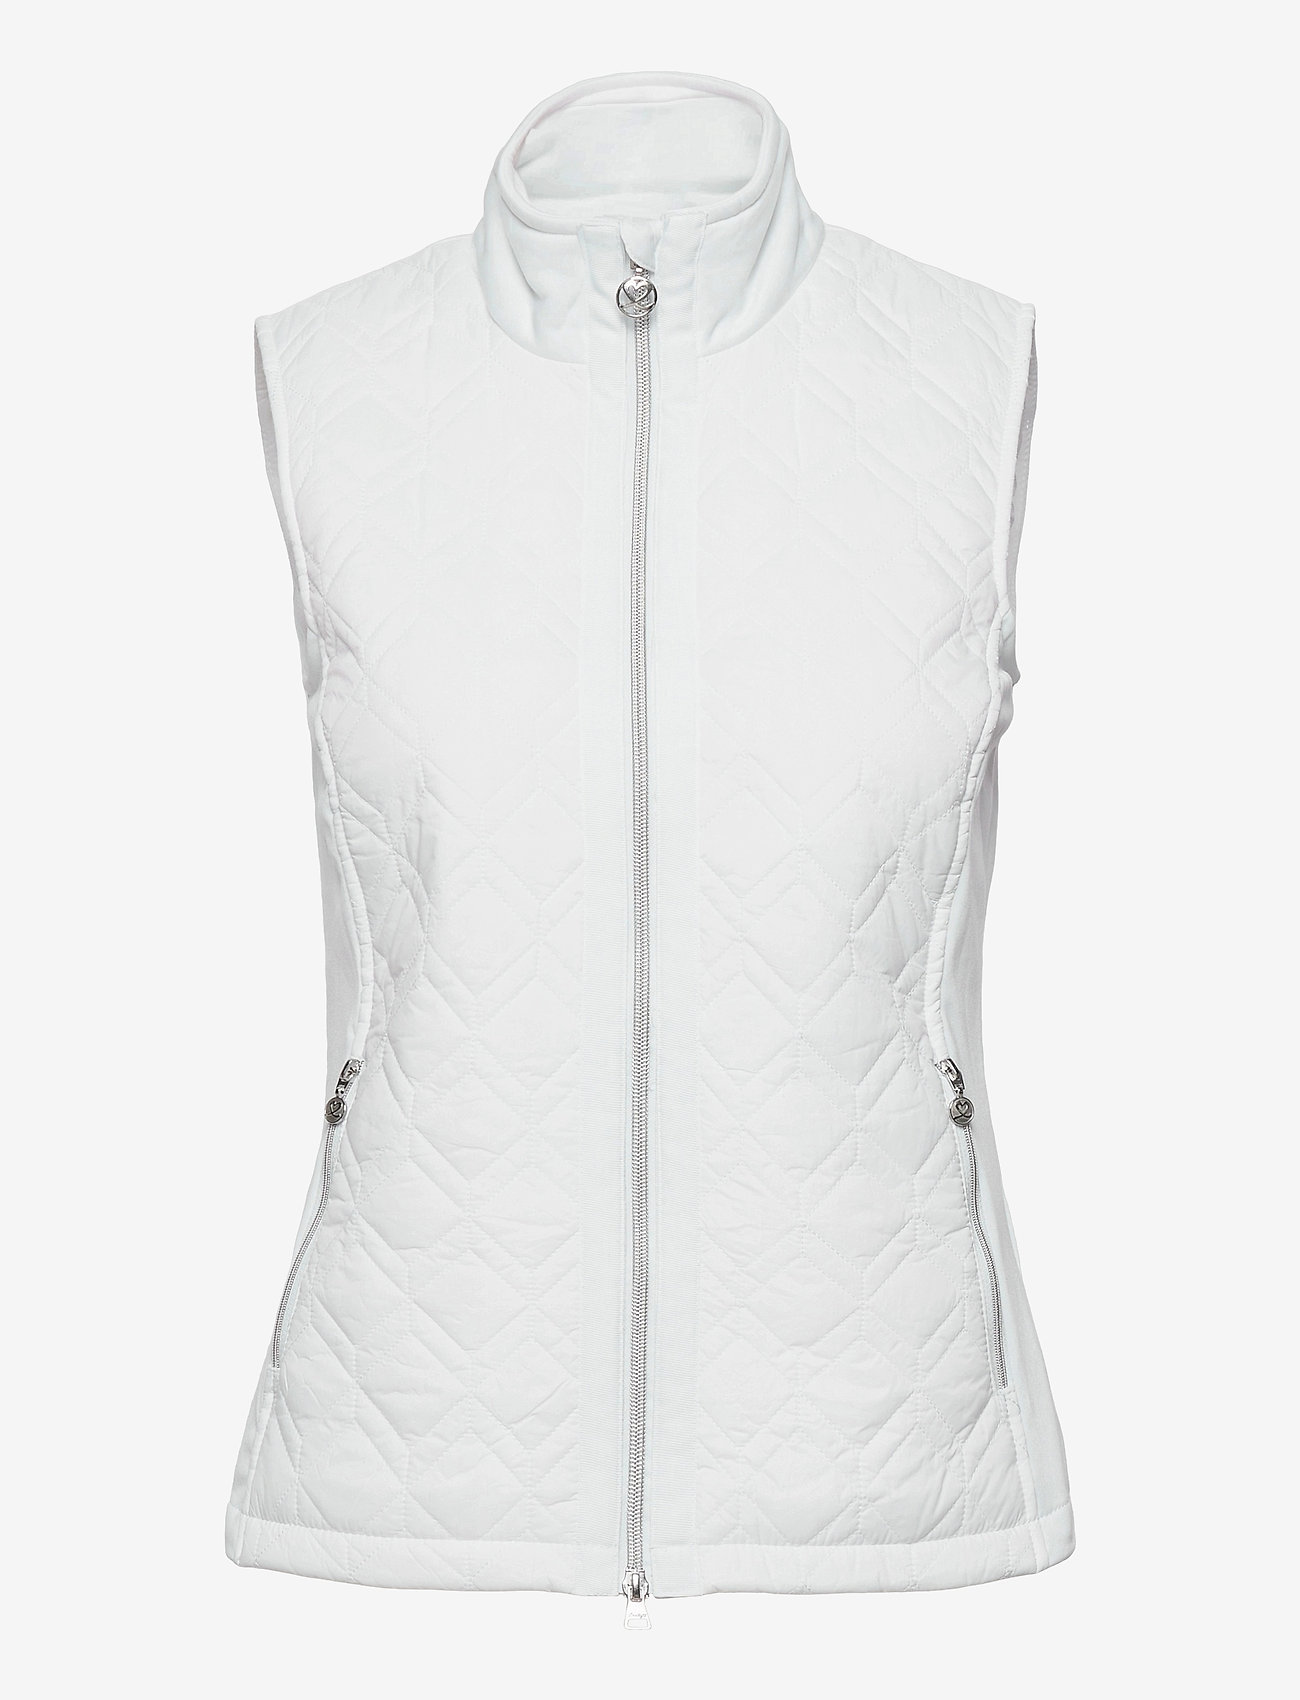 Daily Sports - EVEN VEST - puffer vests - white - 0